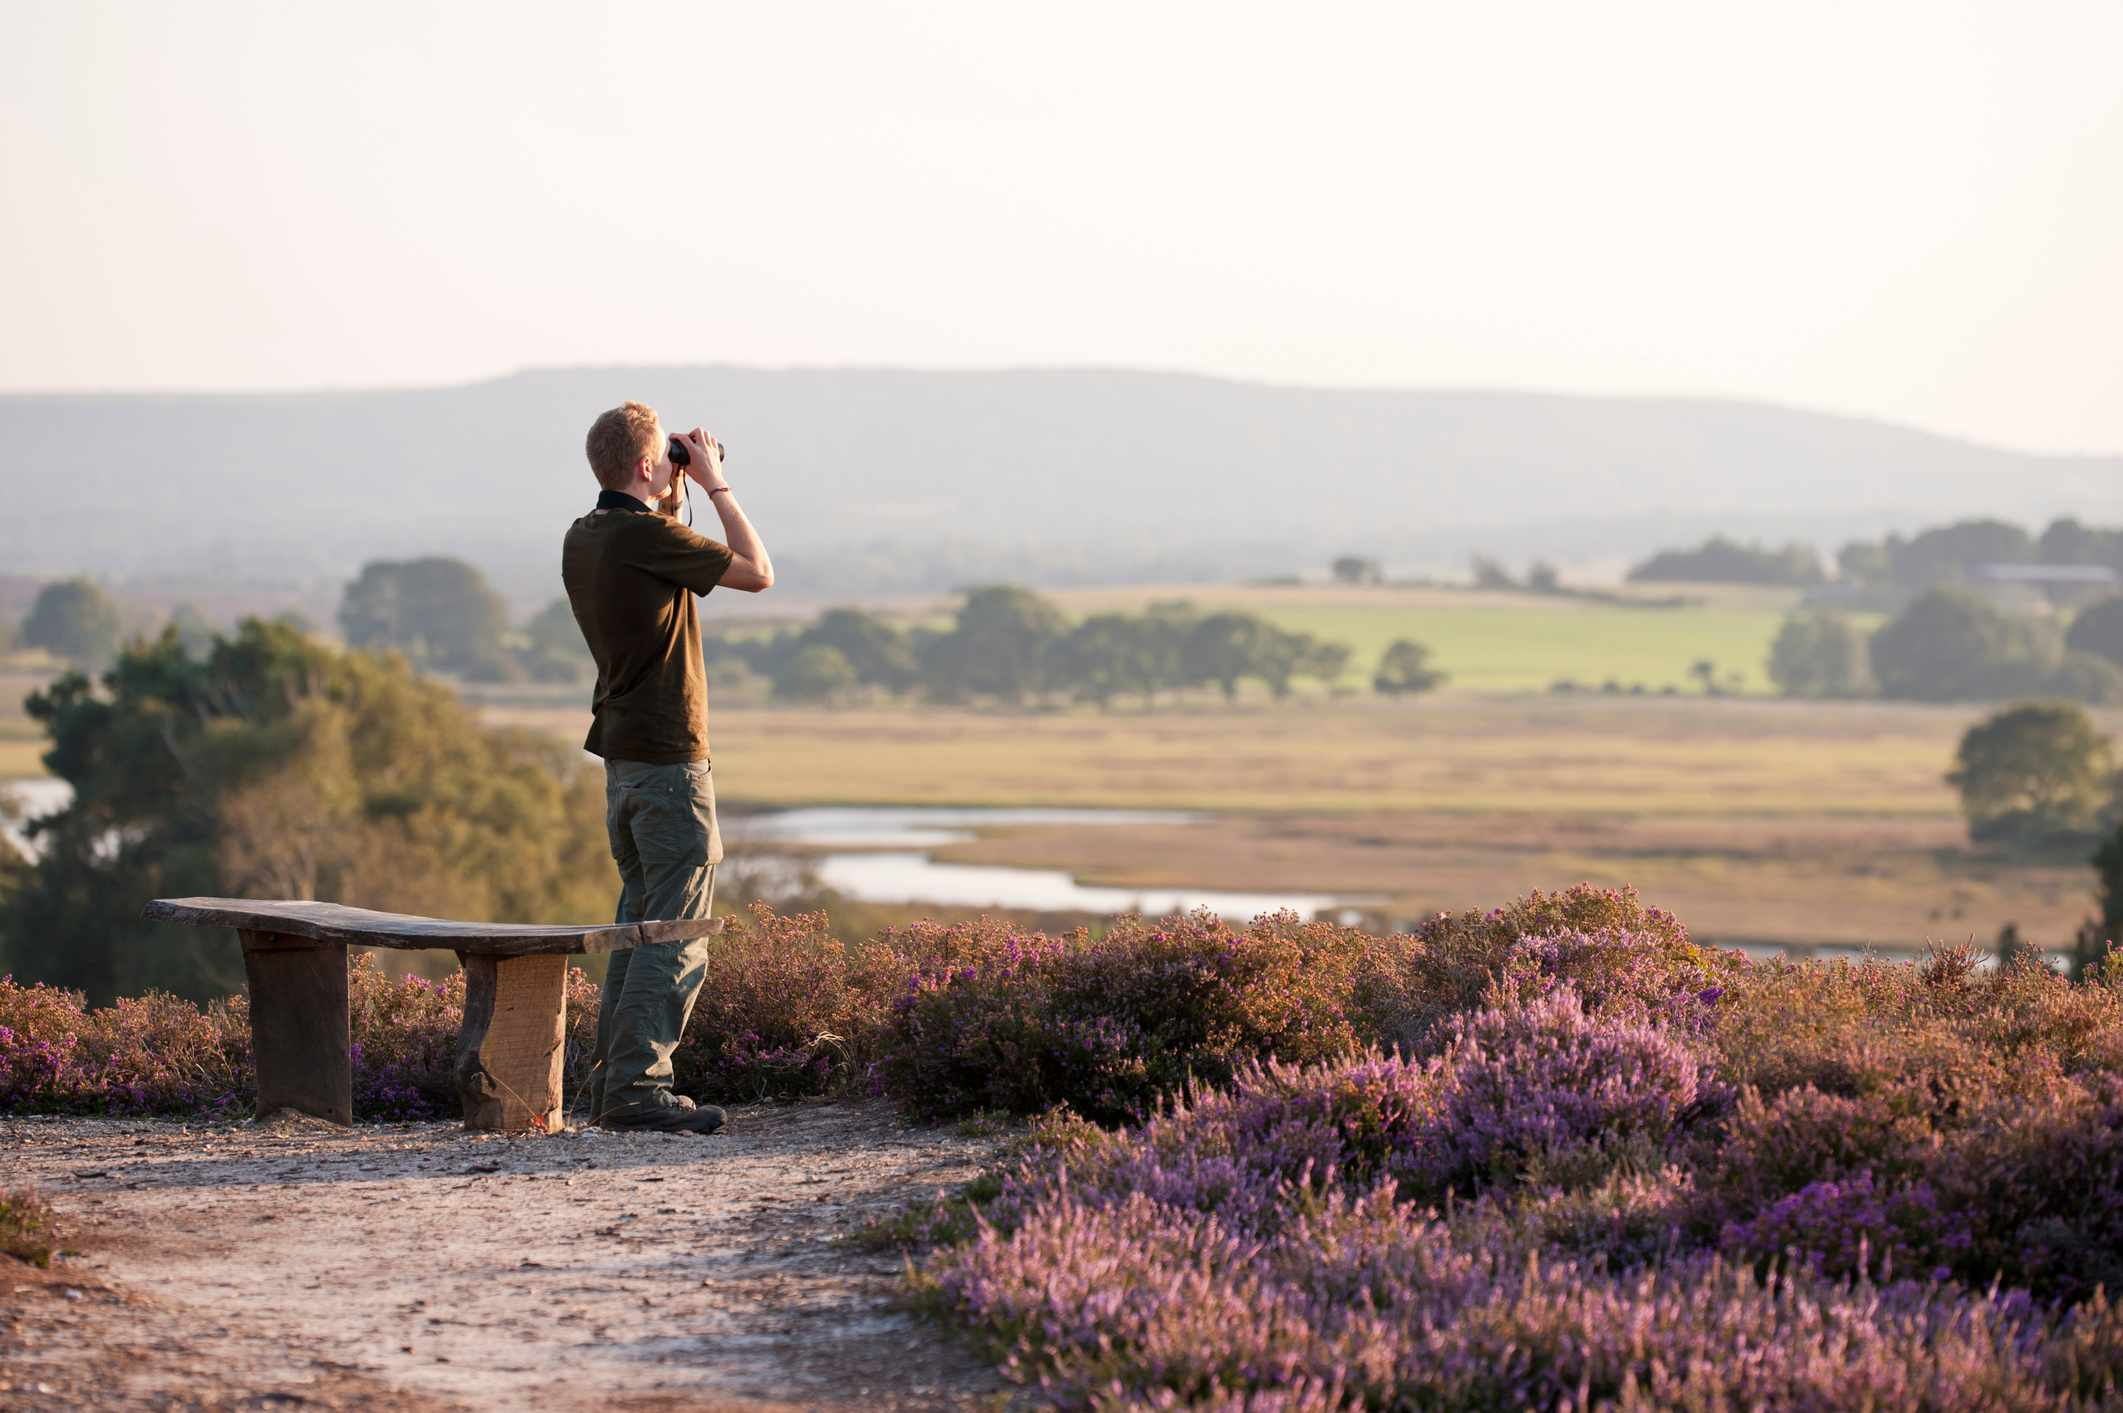 Birdwatching at Arne nature reserve in Dorset.